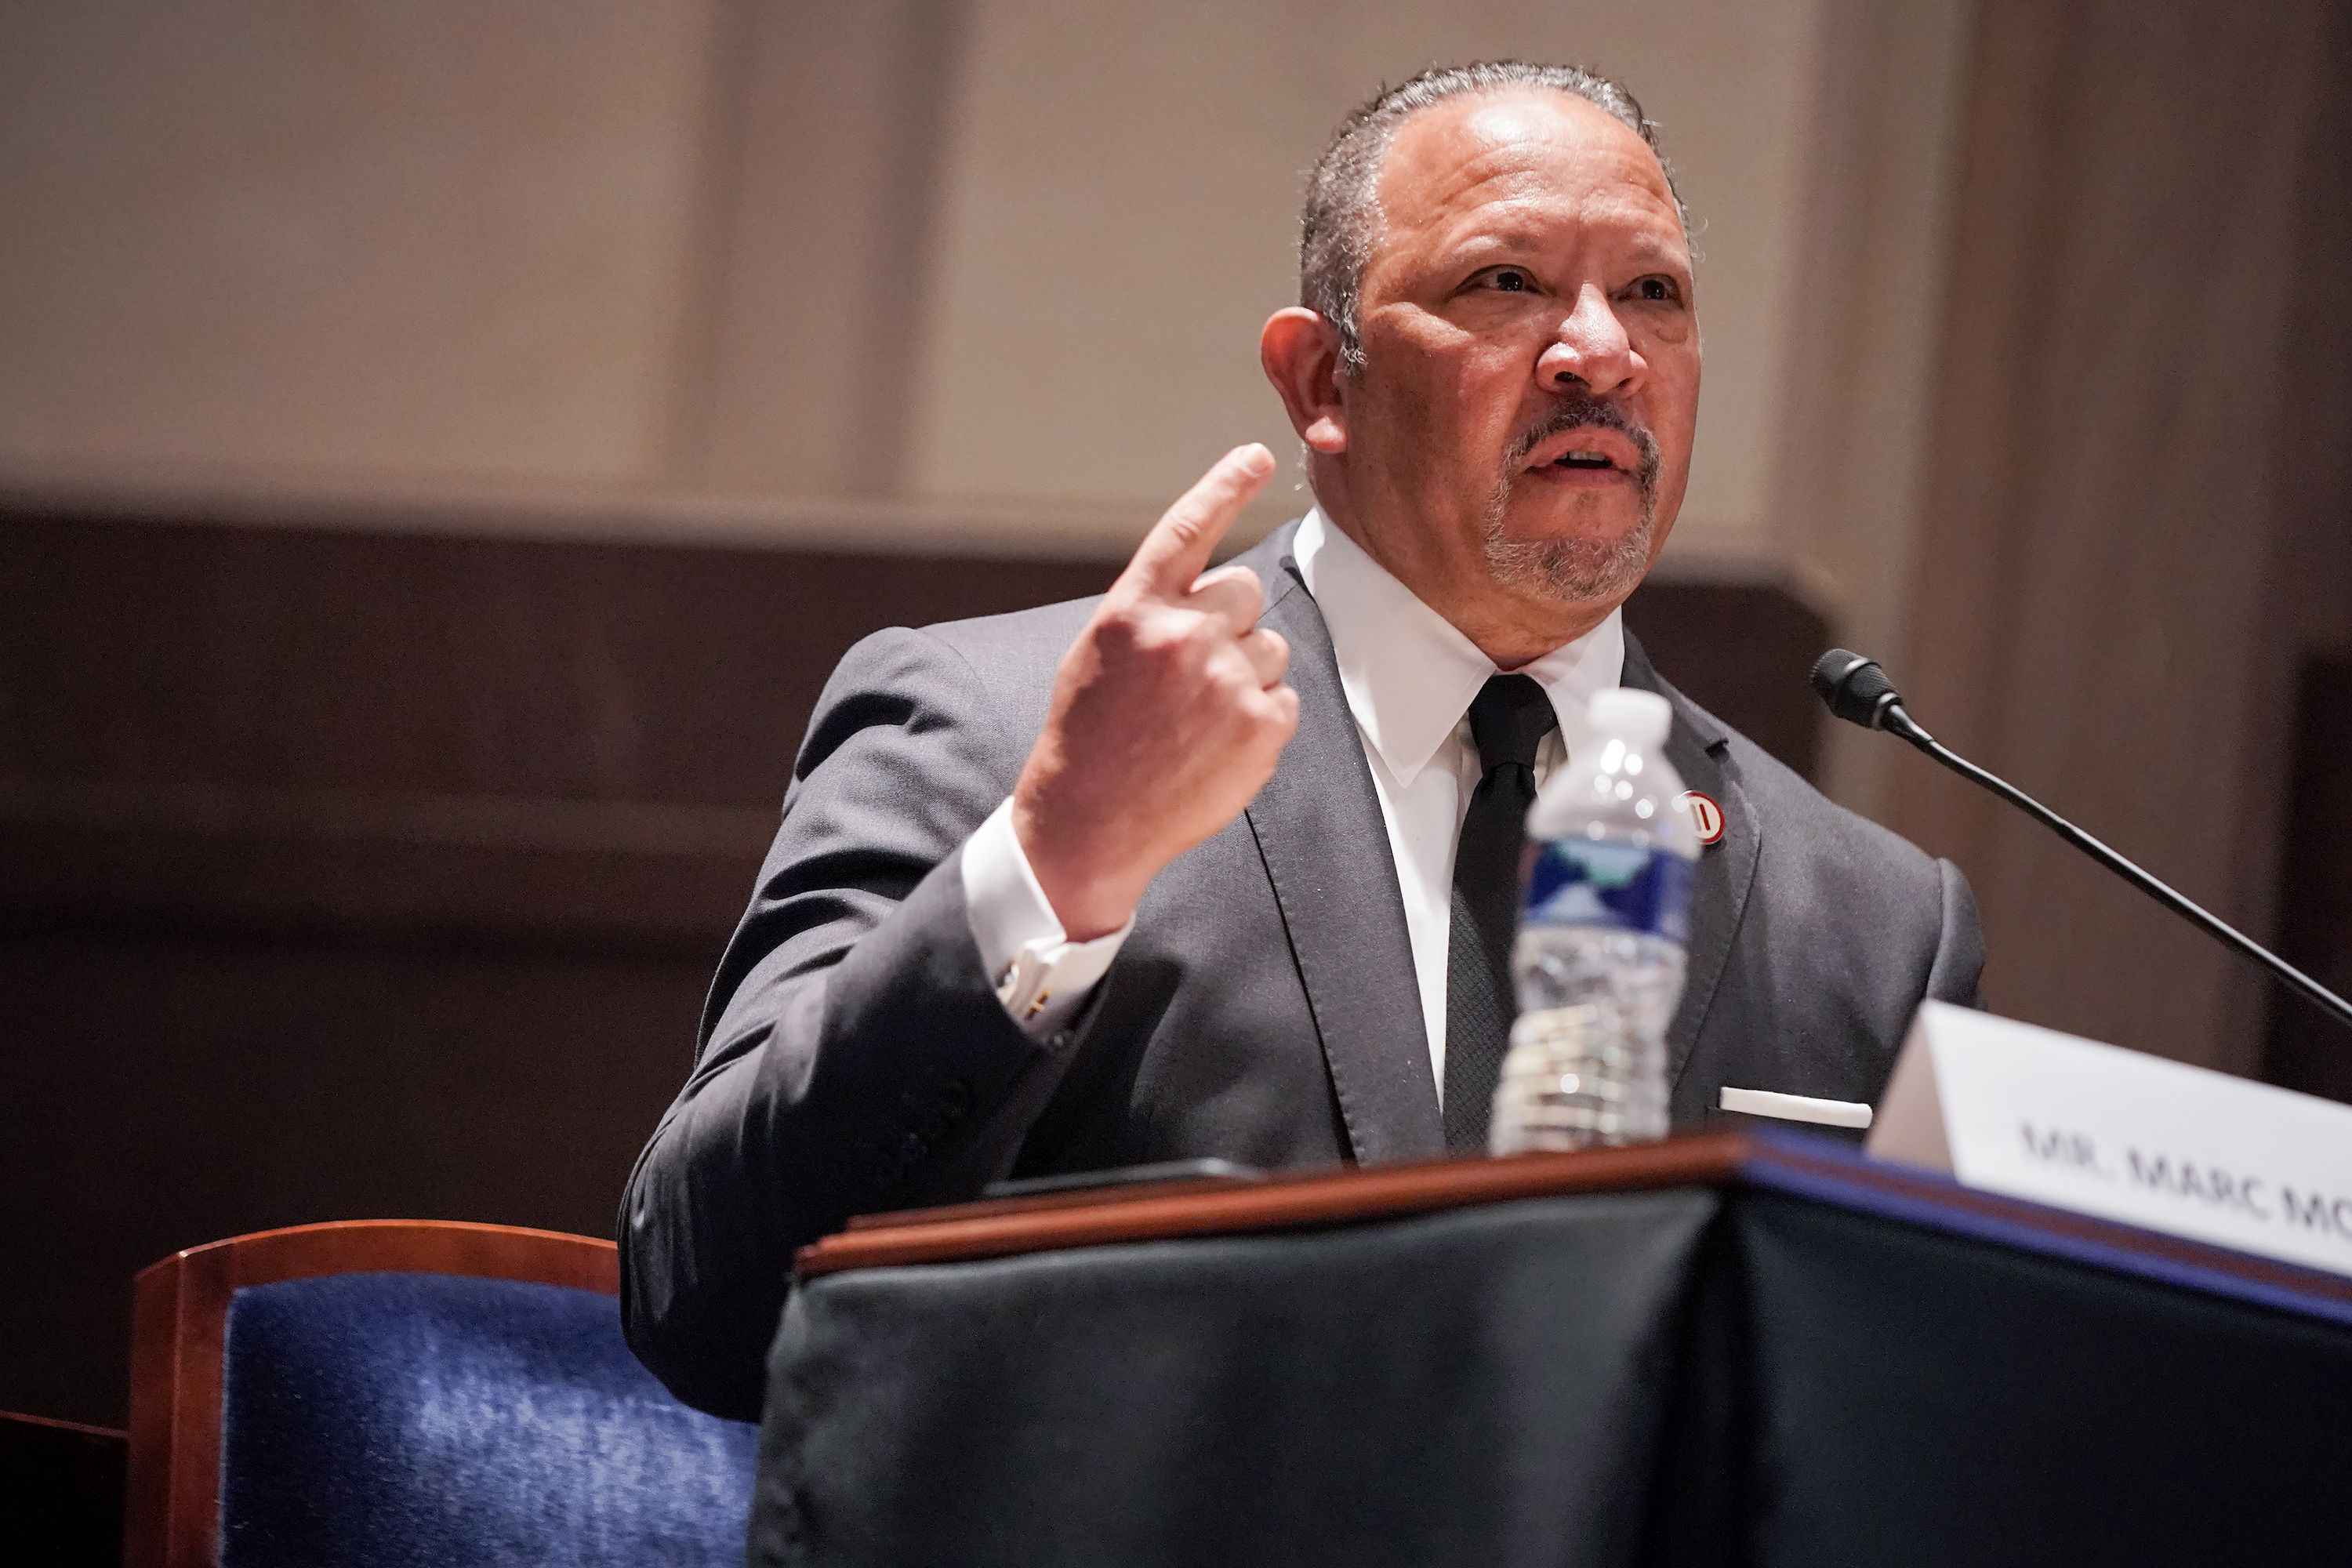 Marc Morial, President and CEO of the National Urban League, gives an opening statement during a hearing on Capitol Hill on June 10 in Washington of the House Judiciary Committee about policing practices and law enforcement accountability.